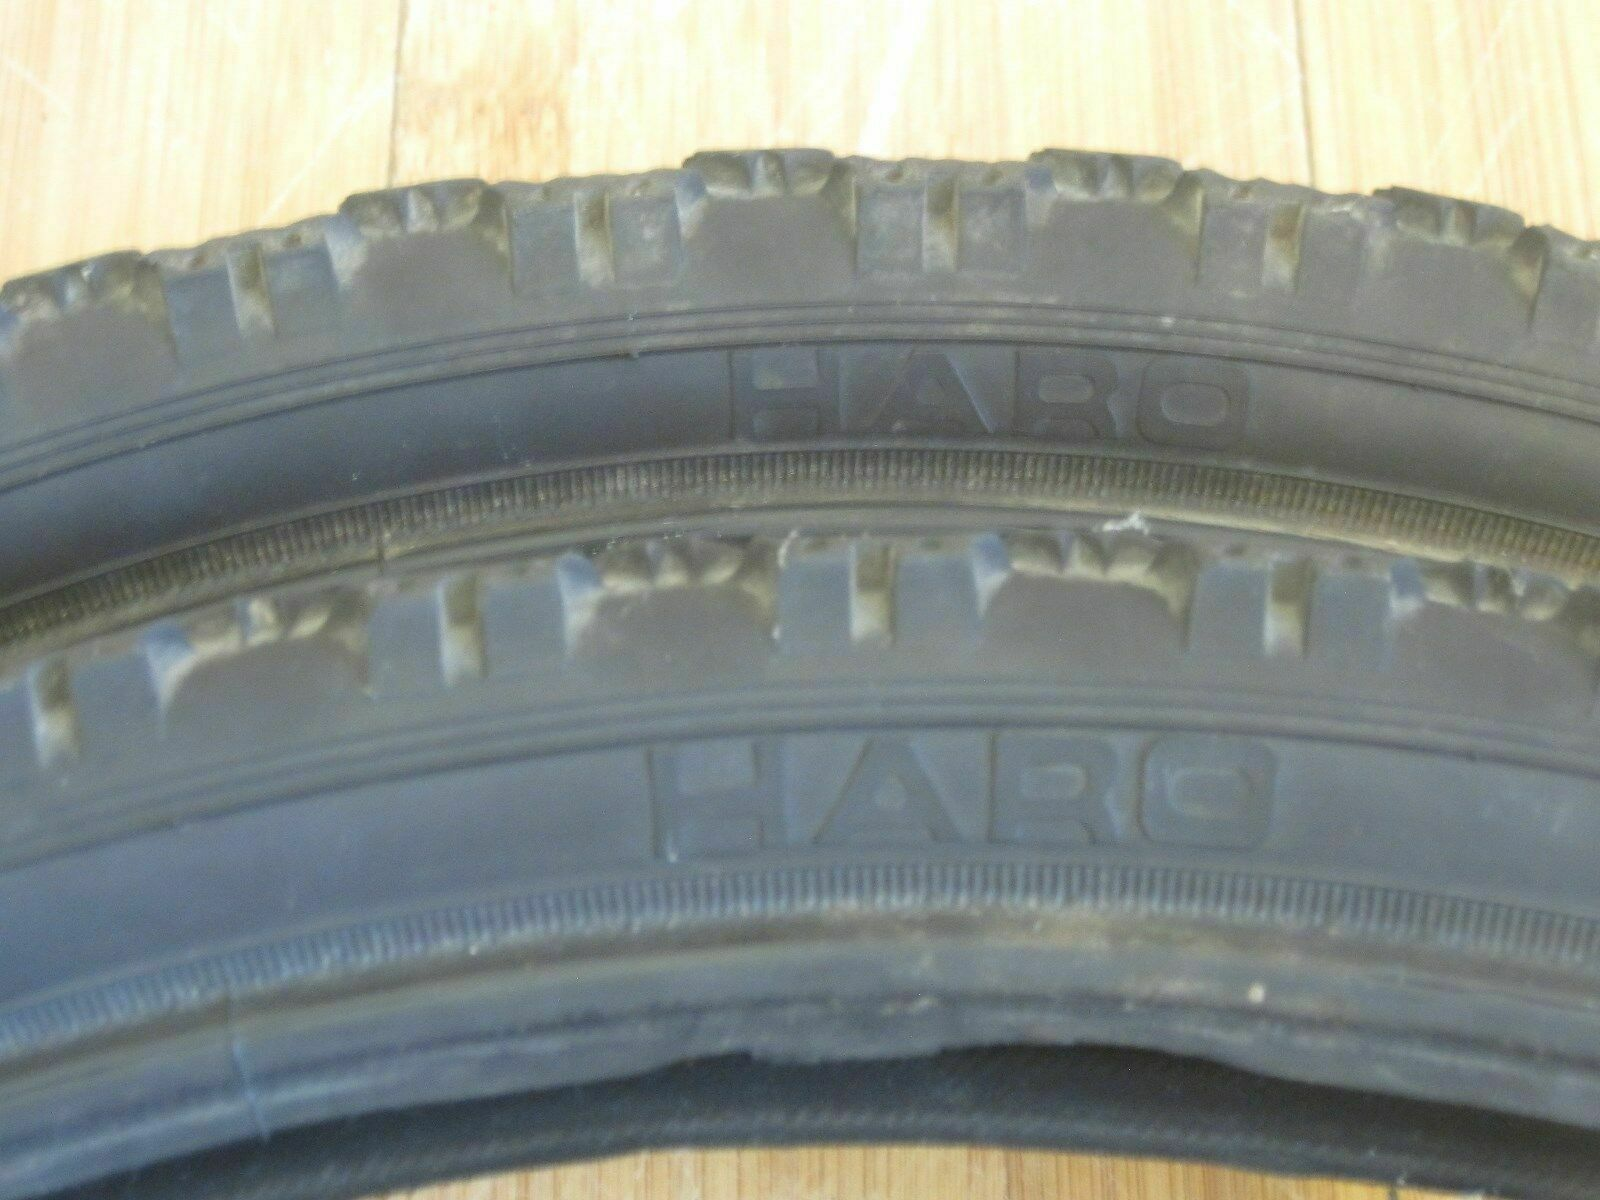 Vintage Haro bmx tires pair 20x1.70 rare old  mid school freestyle race survivor  high-quality merchandise and convenient, honest service